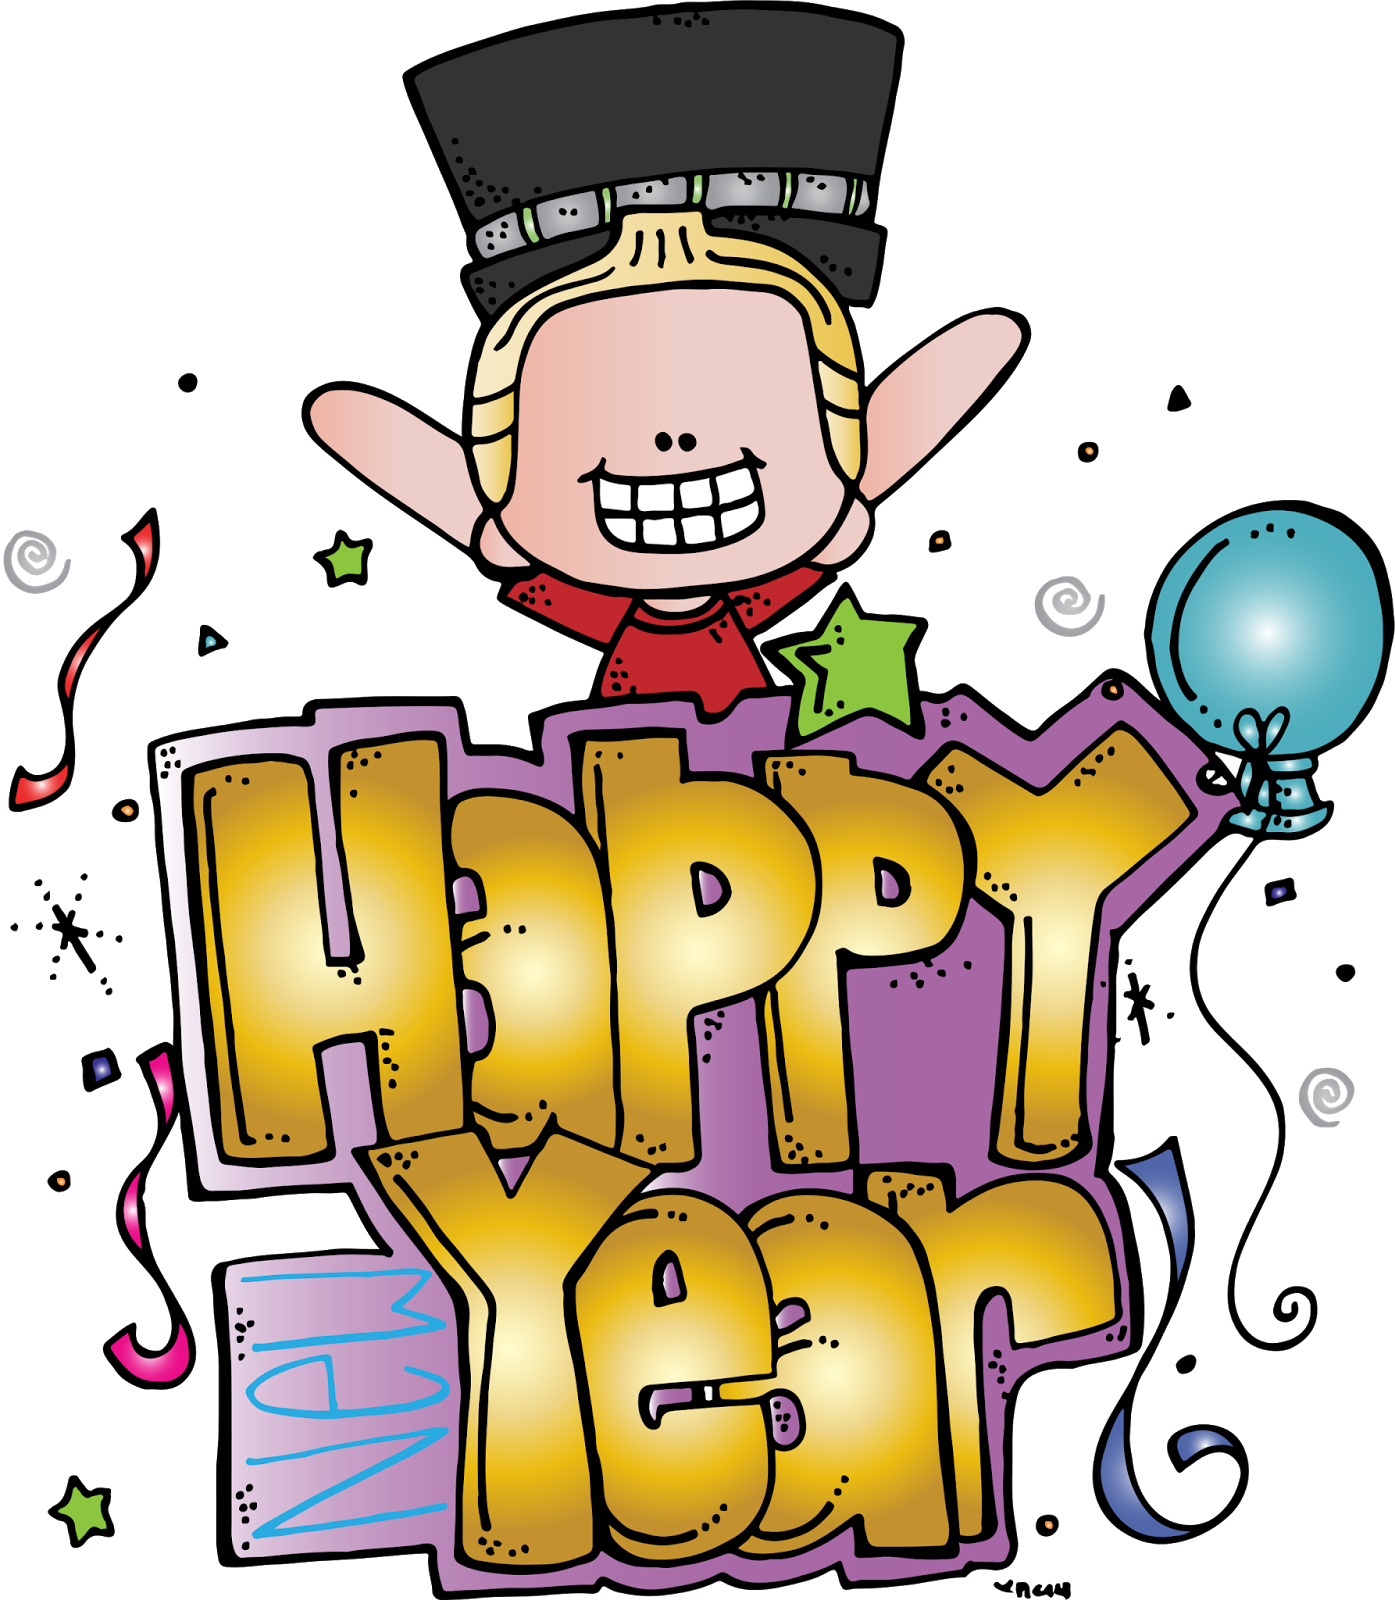 Have a great school year clipart banner transparent library Melonheadz Illustrating Happy New Year Freebie!!!! | Clipart ... banner transparent library